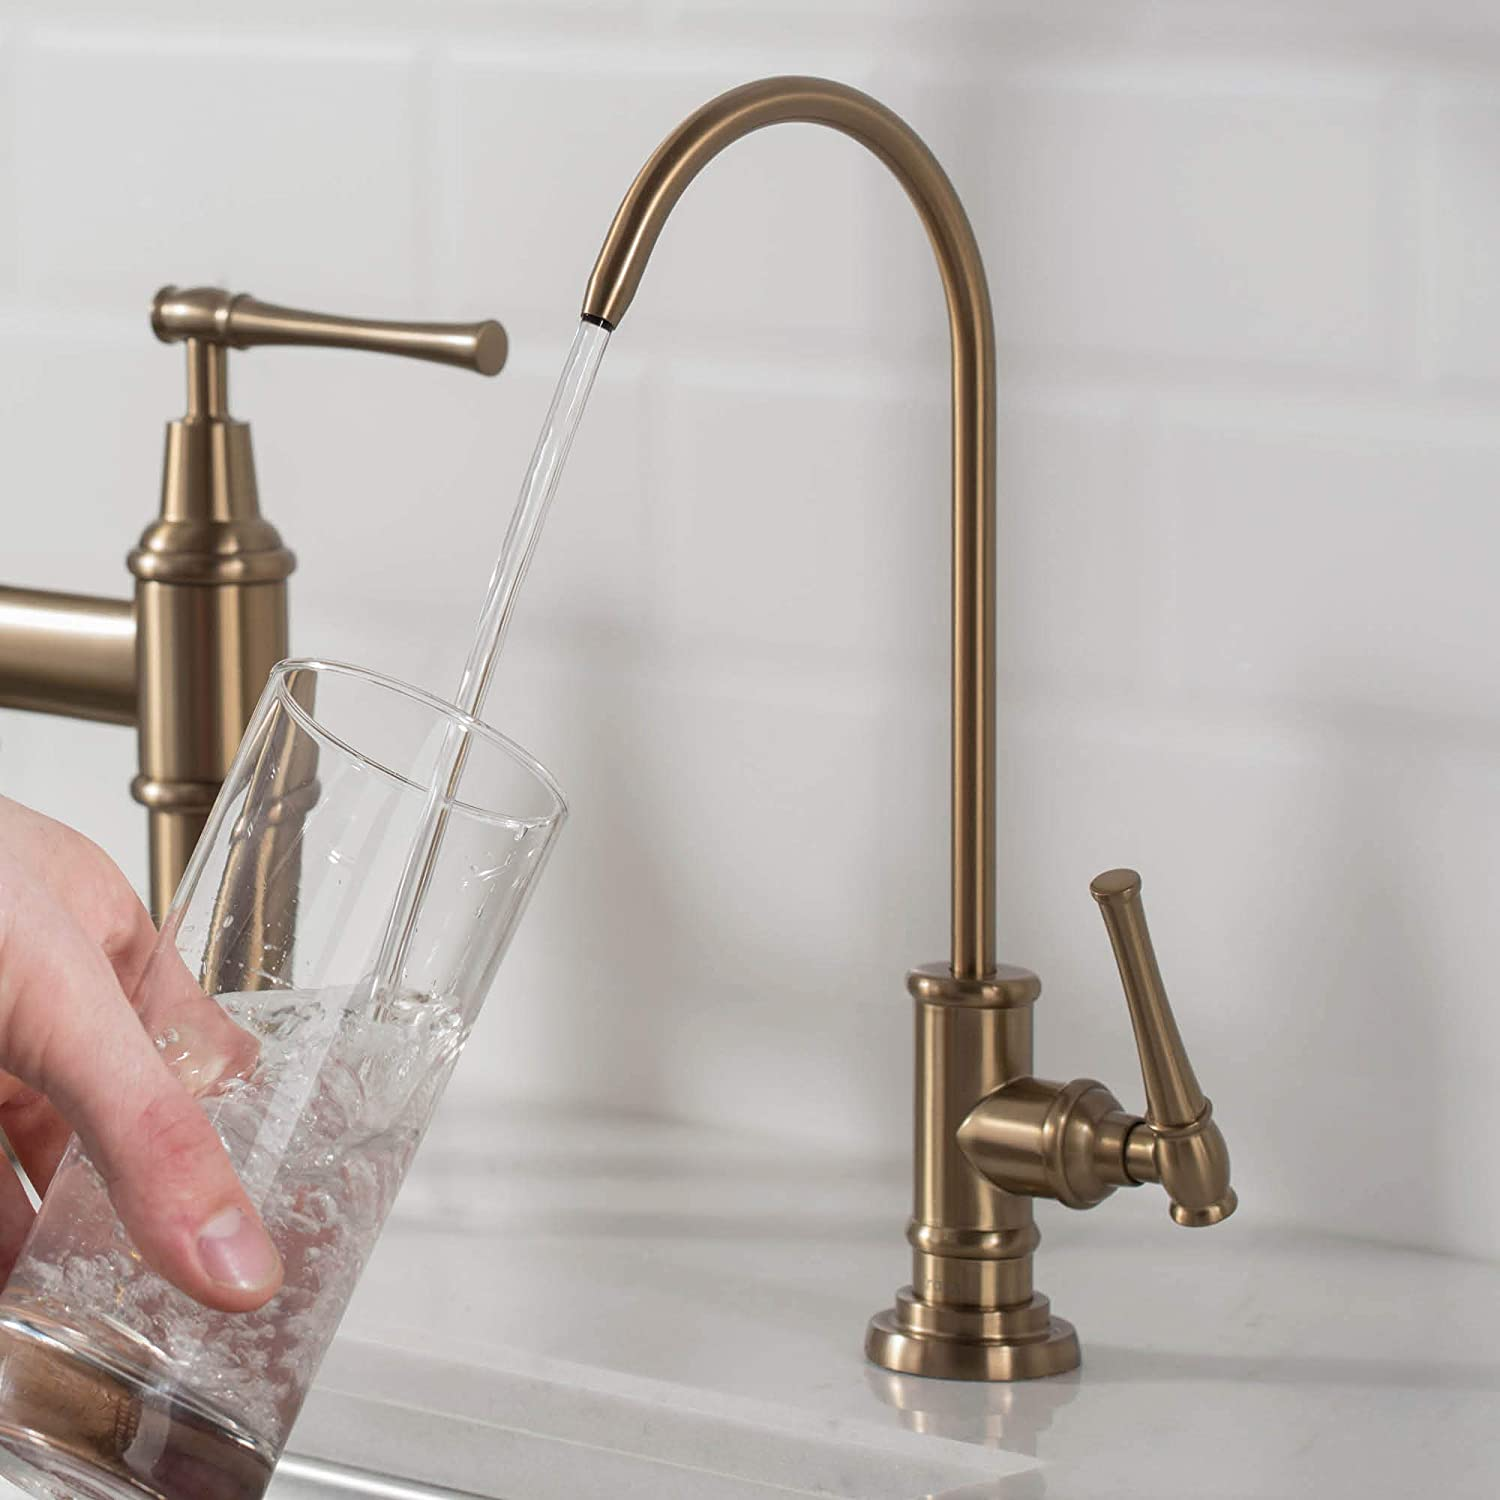 Kraus FF-102BG Allyn 100% Lead-Free Kitchen Water Filter Faucet, Brushed Gold